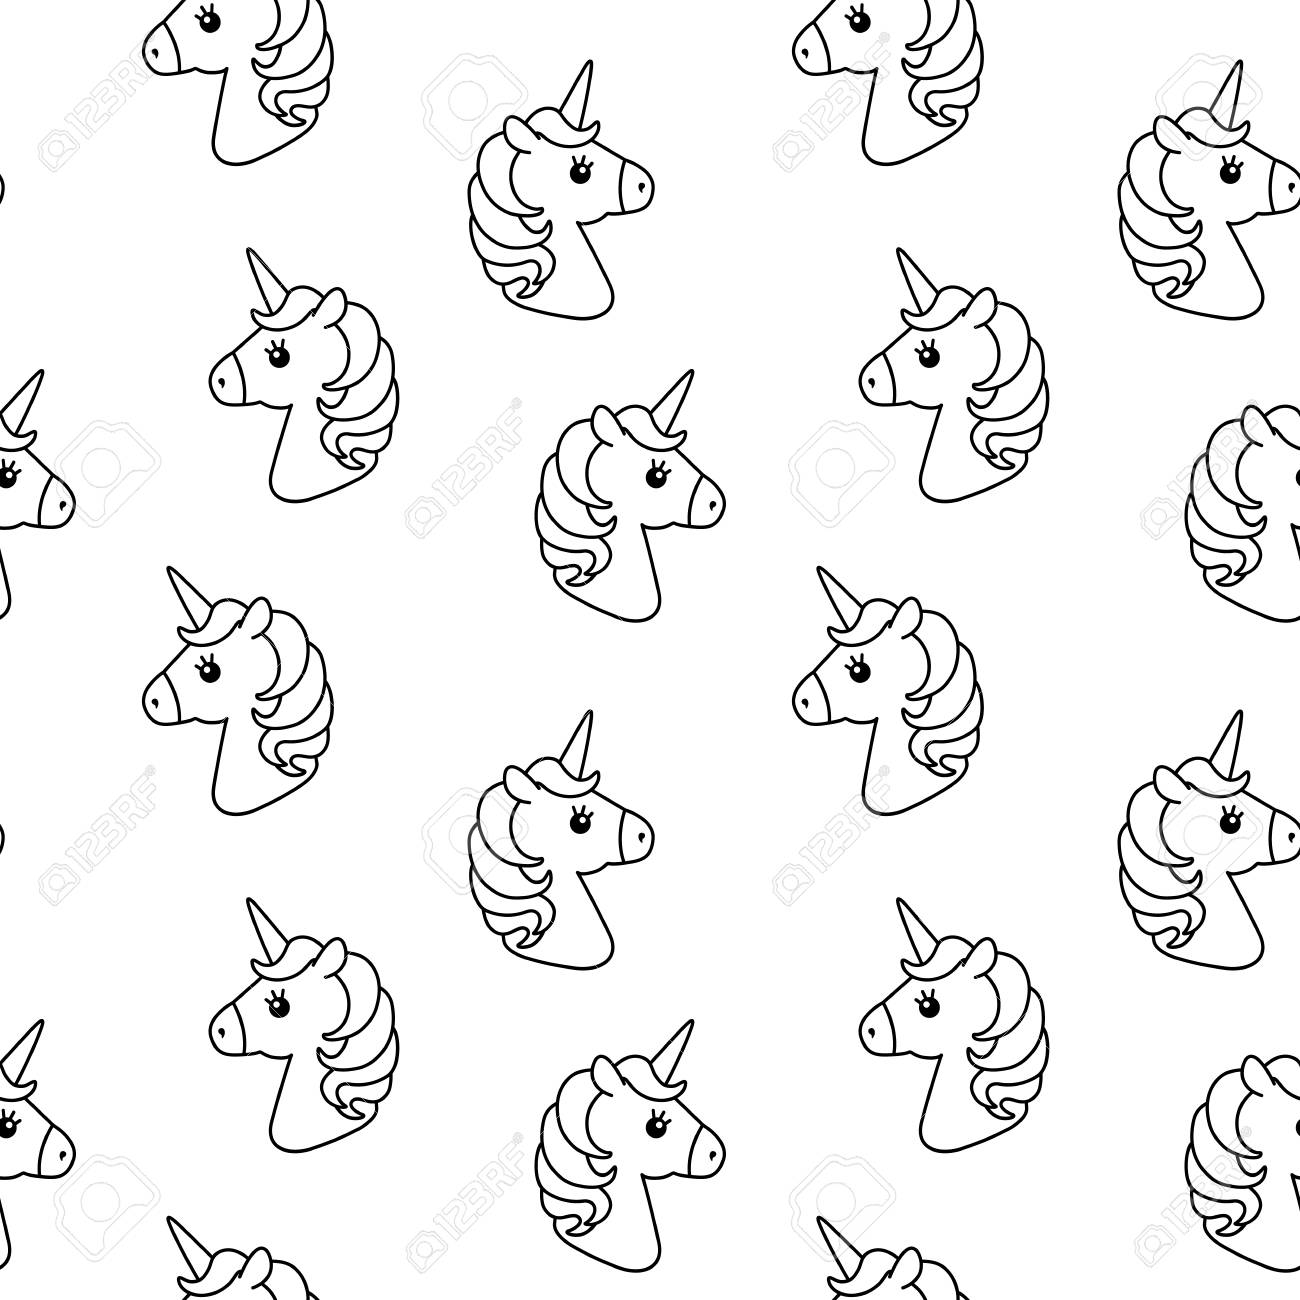 Stock Photo   Unicorn Vector Seamless Pattern. Horse Head. Colored Book.  Black And White Outline Icon Isolated. Cute Magic Cartoon Fantasy Animal.